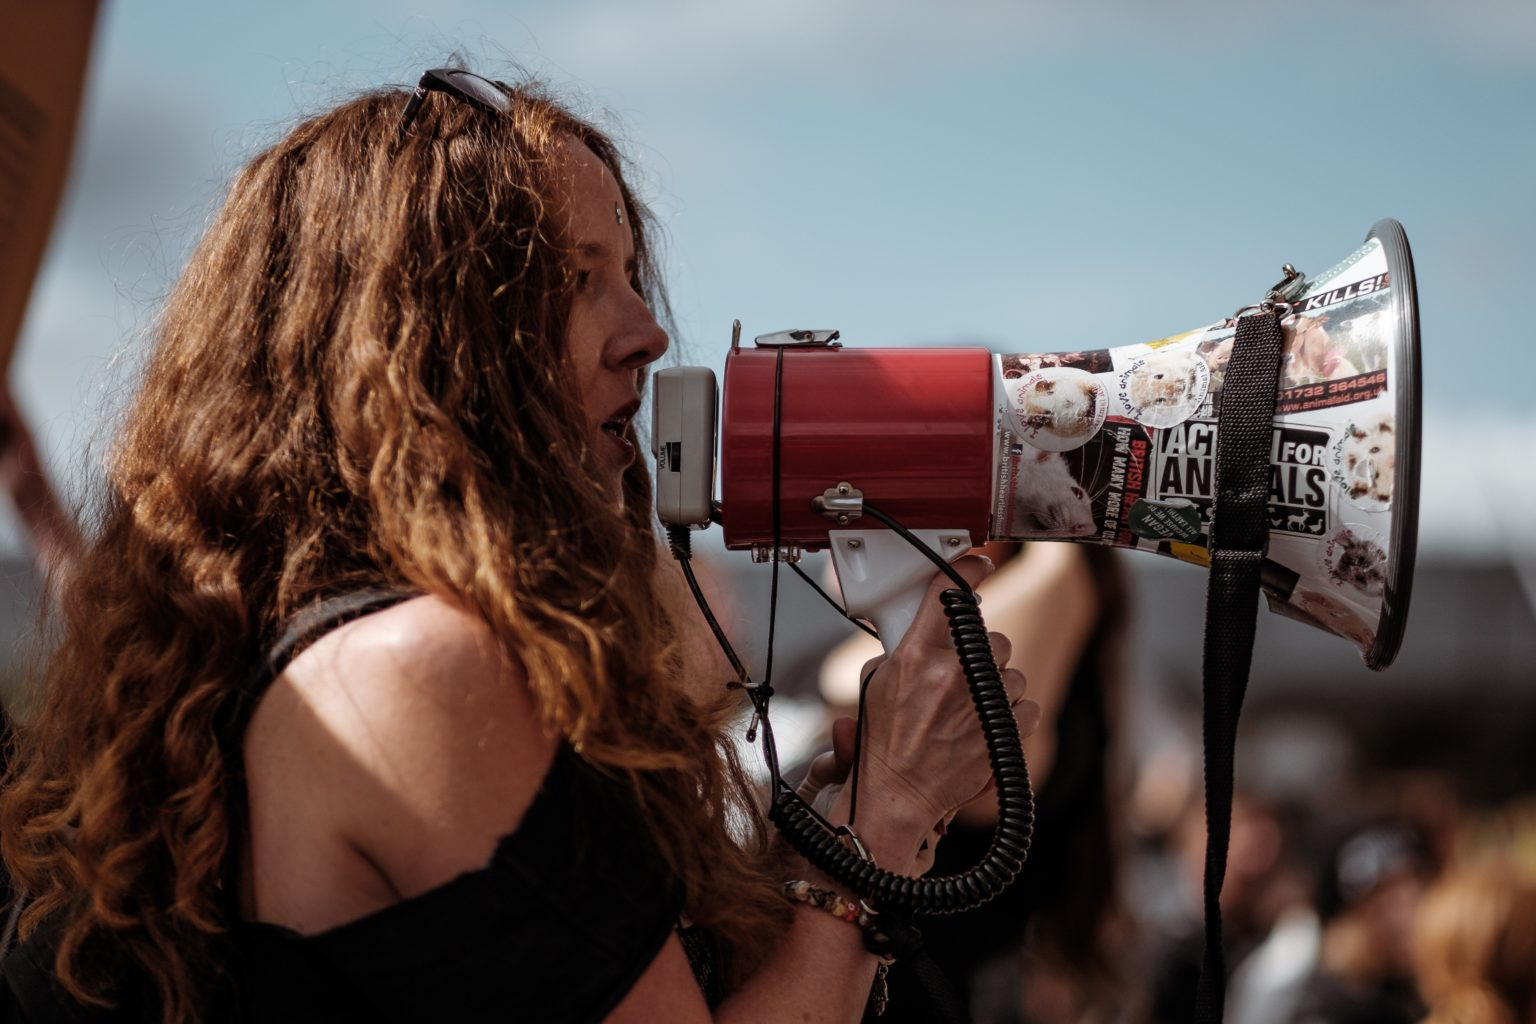 Are You Scared to Speak Out? Here's How to Find Your Voice